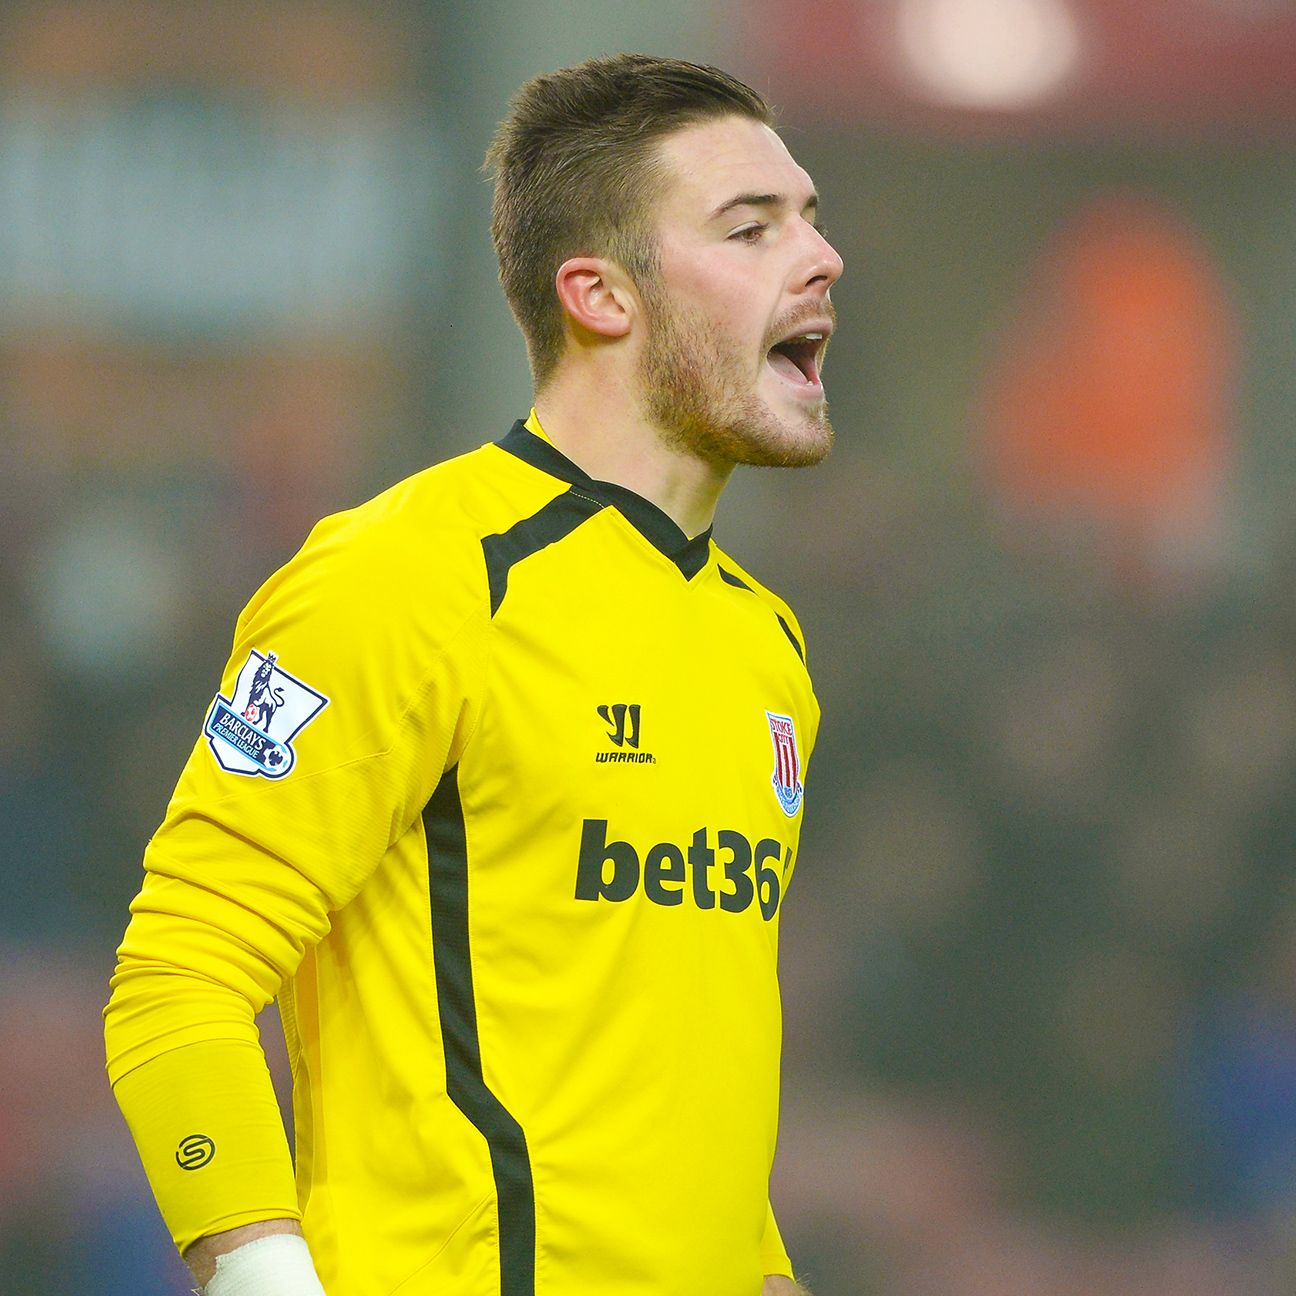 Young goalkeeper Jack Butland will be looking to help lead Stoke to another top-10 finish.